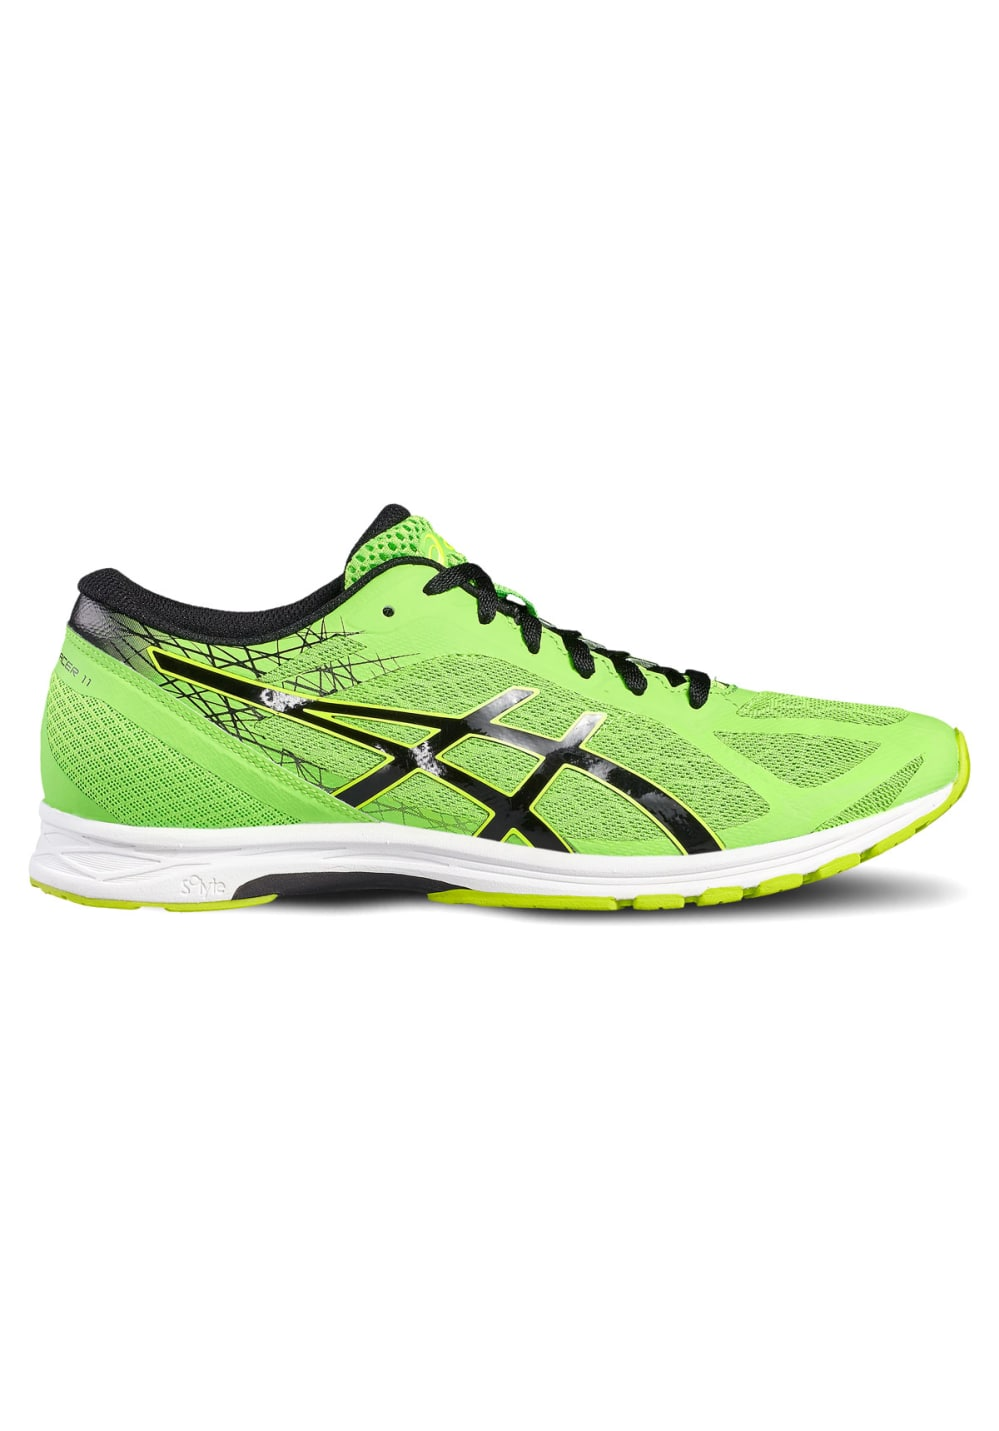 ASICS GEL-DS Racer 11 - Running shoes for Men - Green